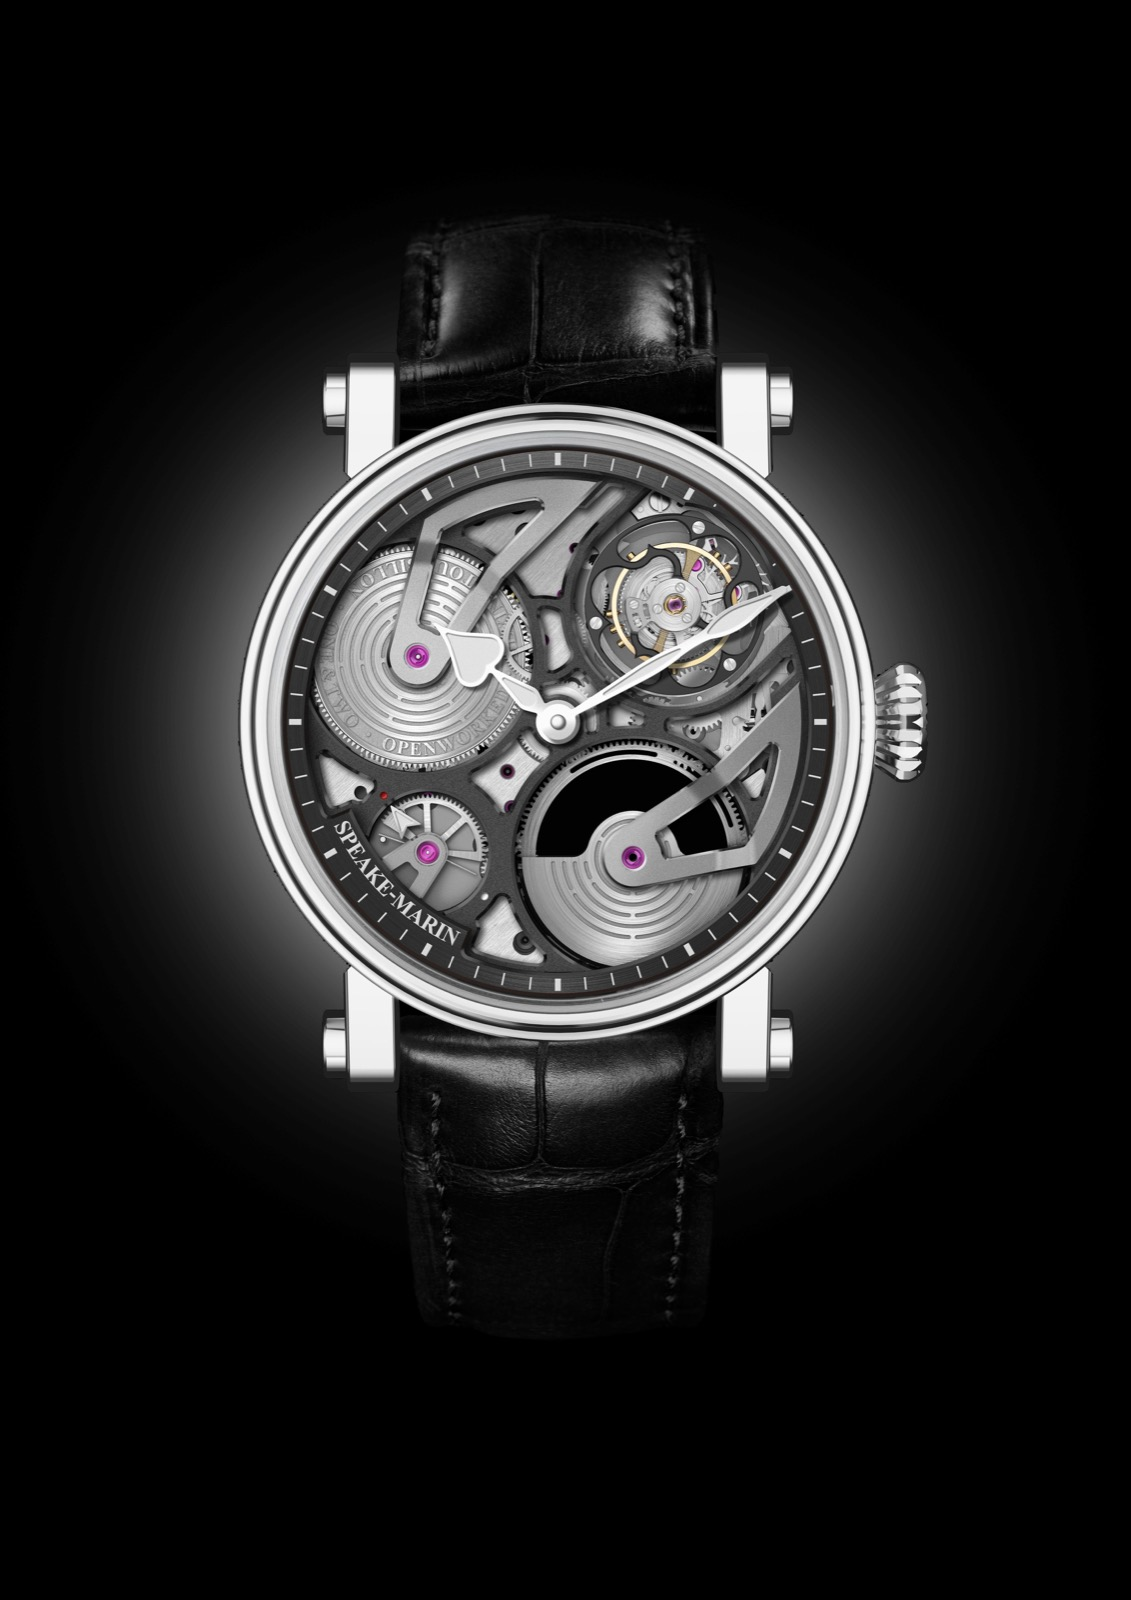 Speake-Marin One&Two Openworked Flying Tourbillon 38 mm